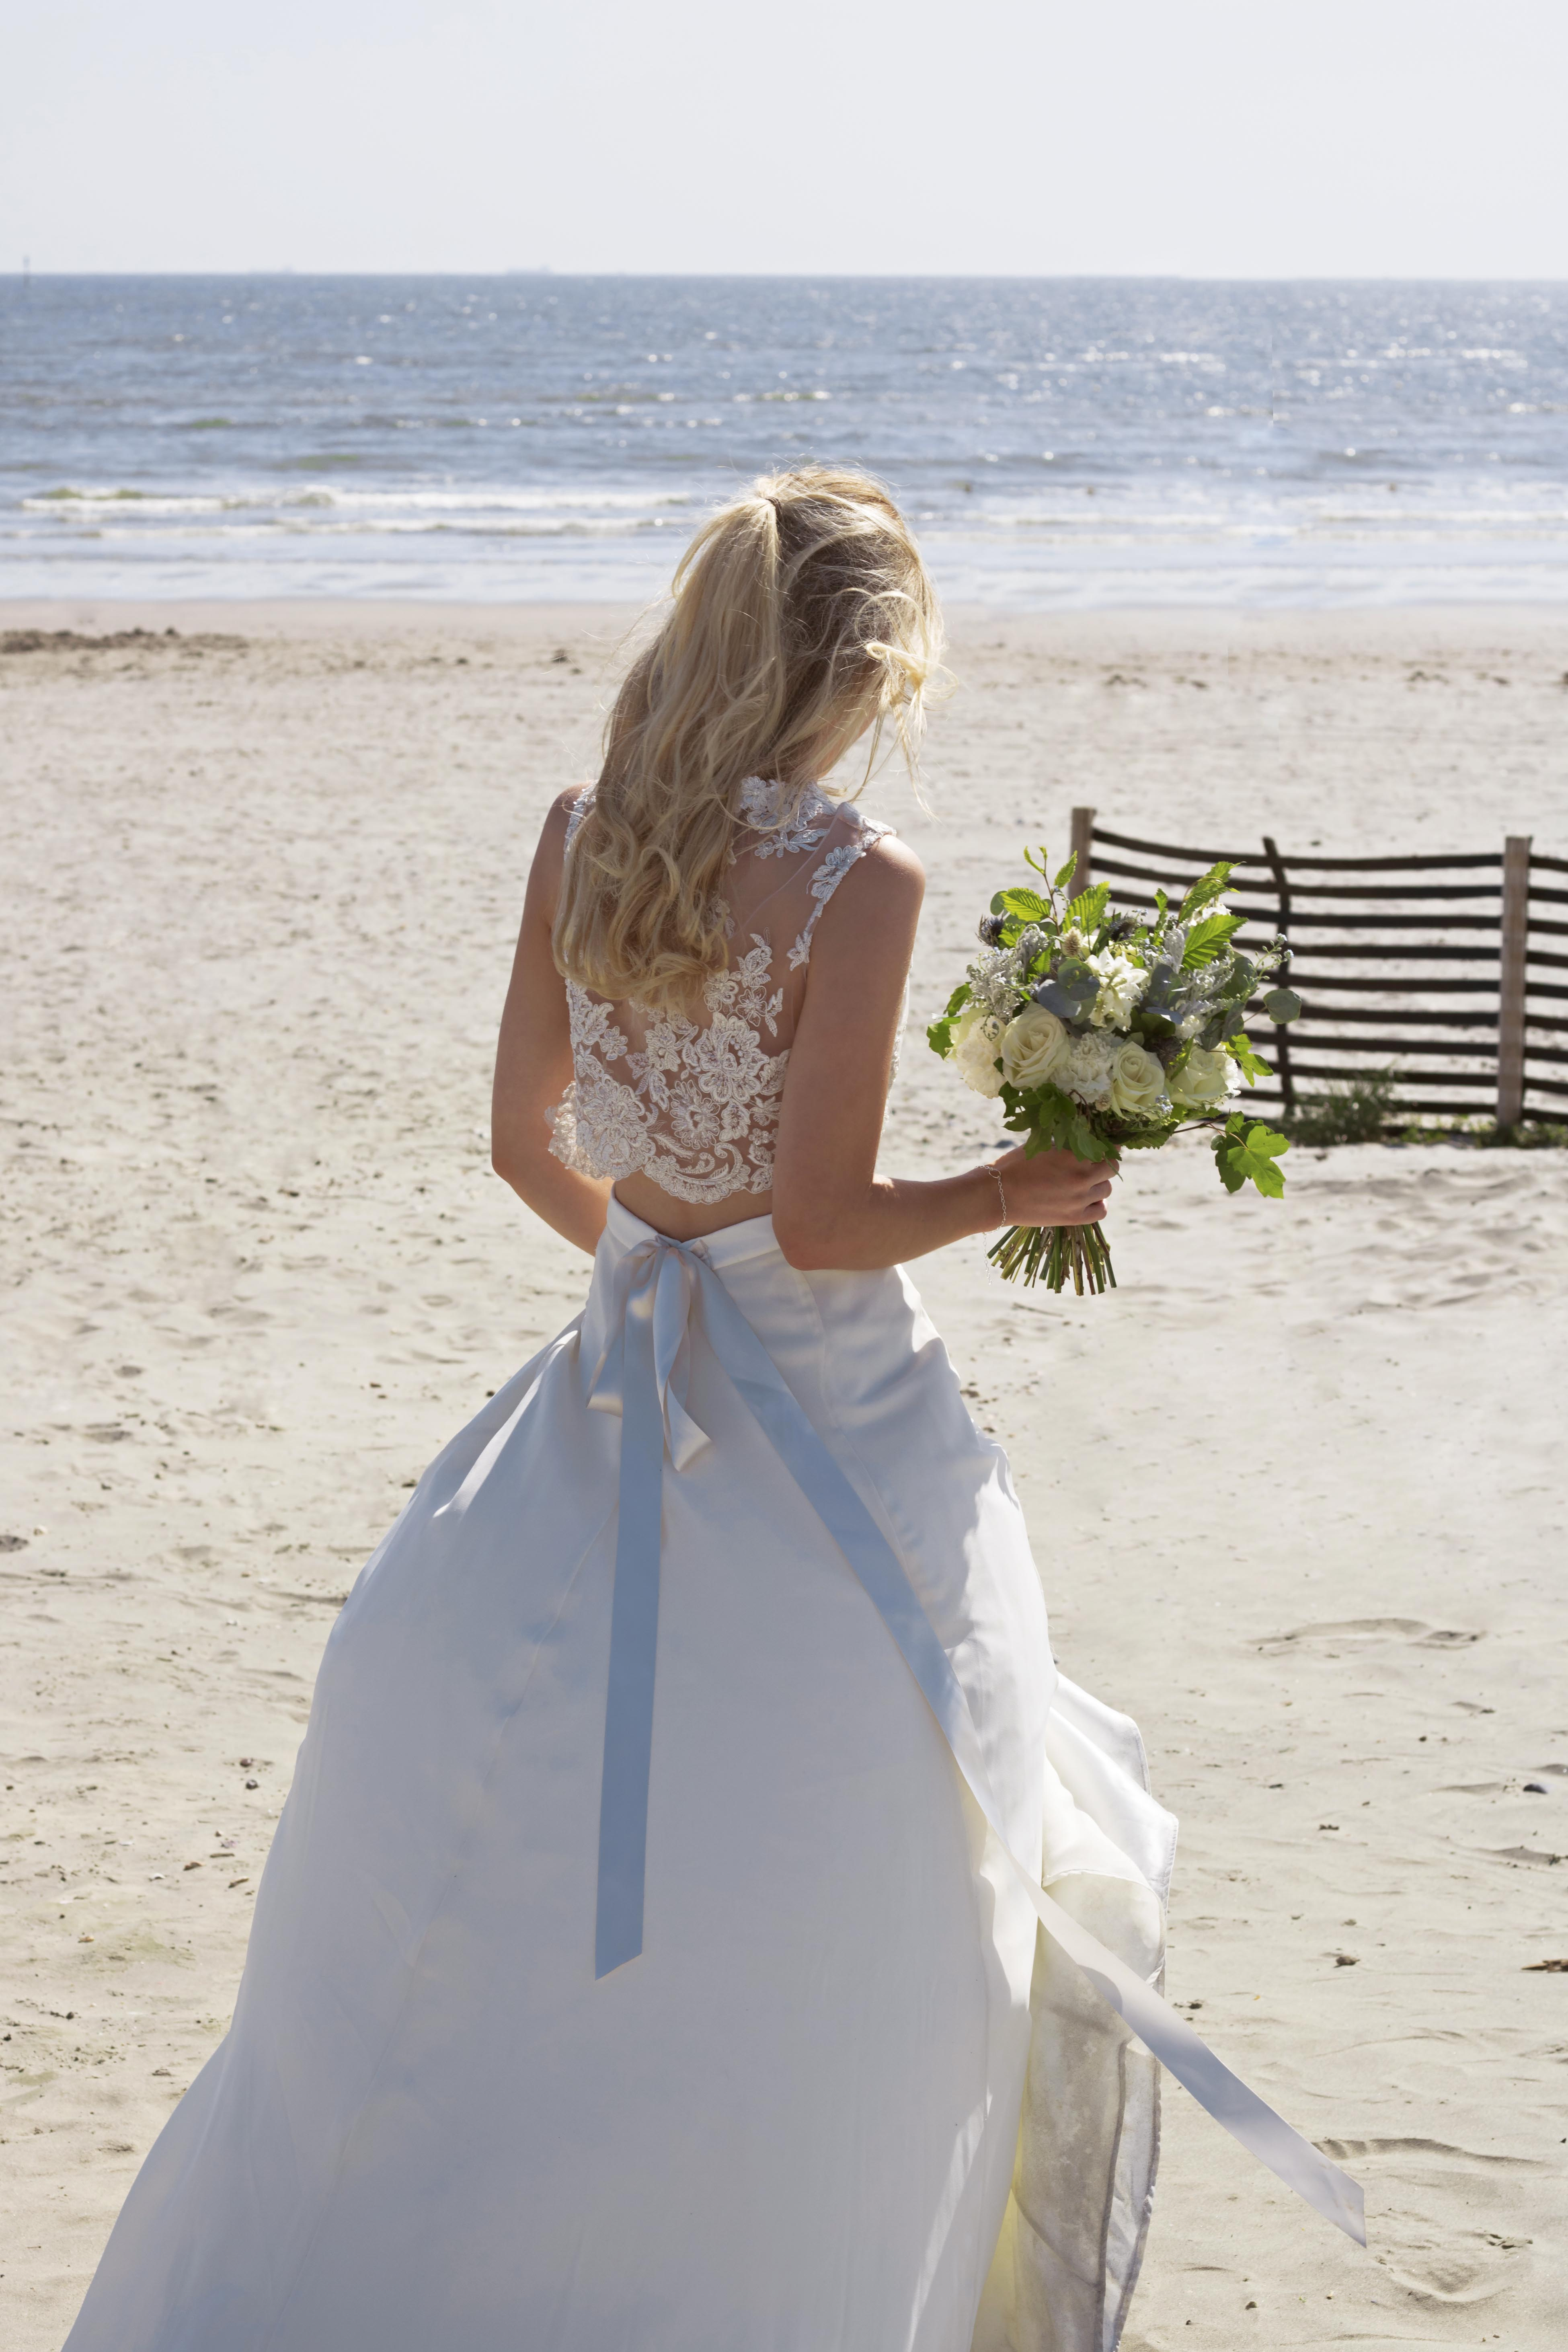 Relaxed Bridal Shots at the Beach